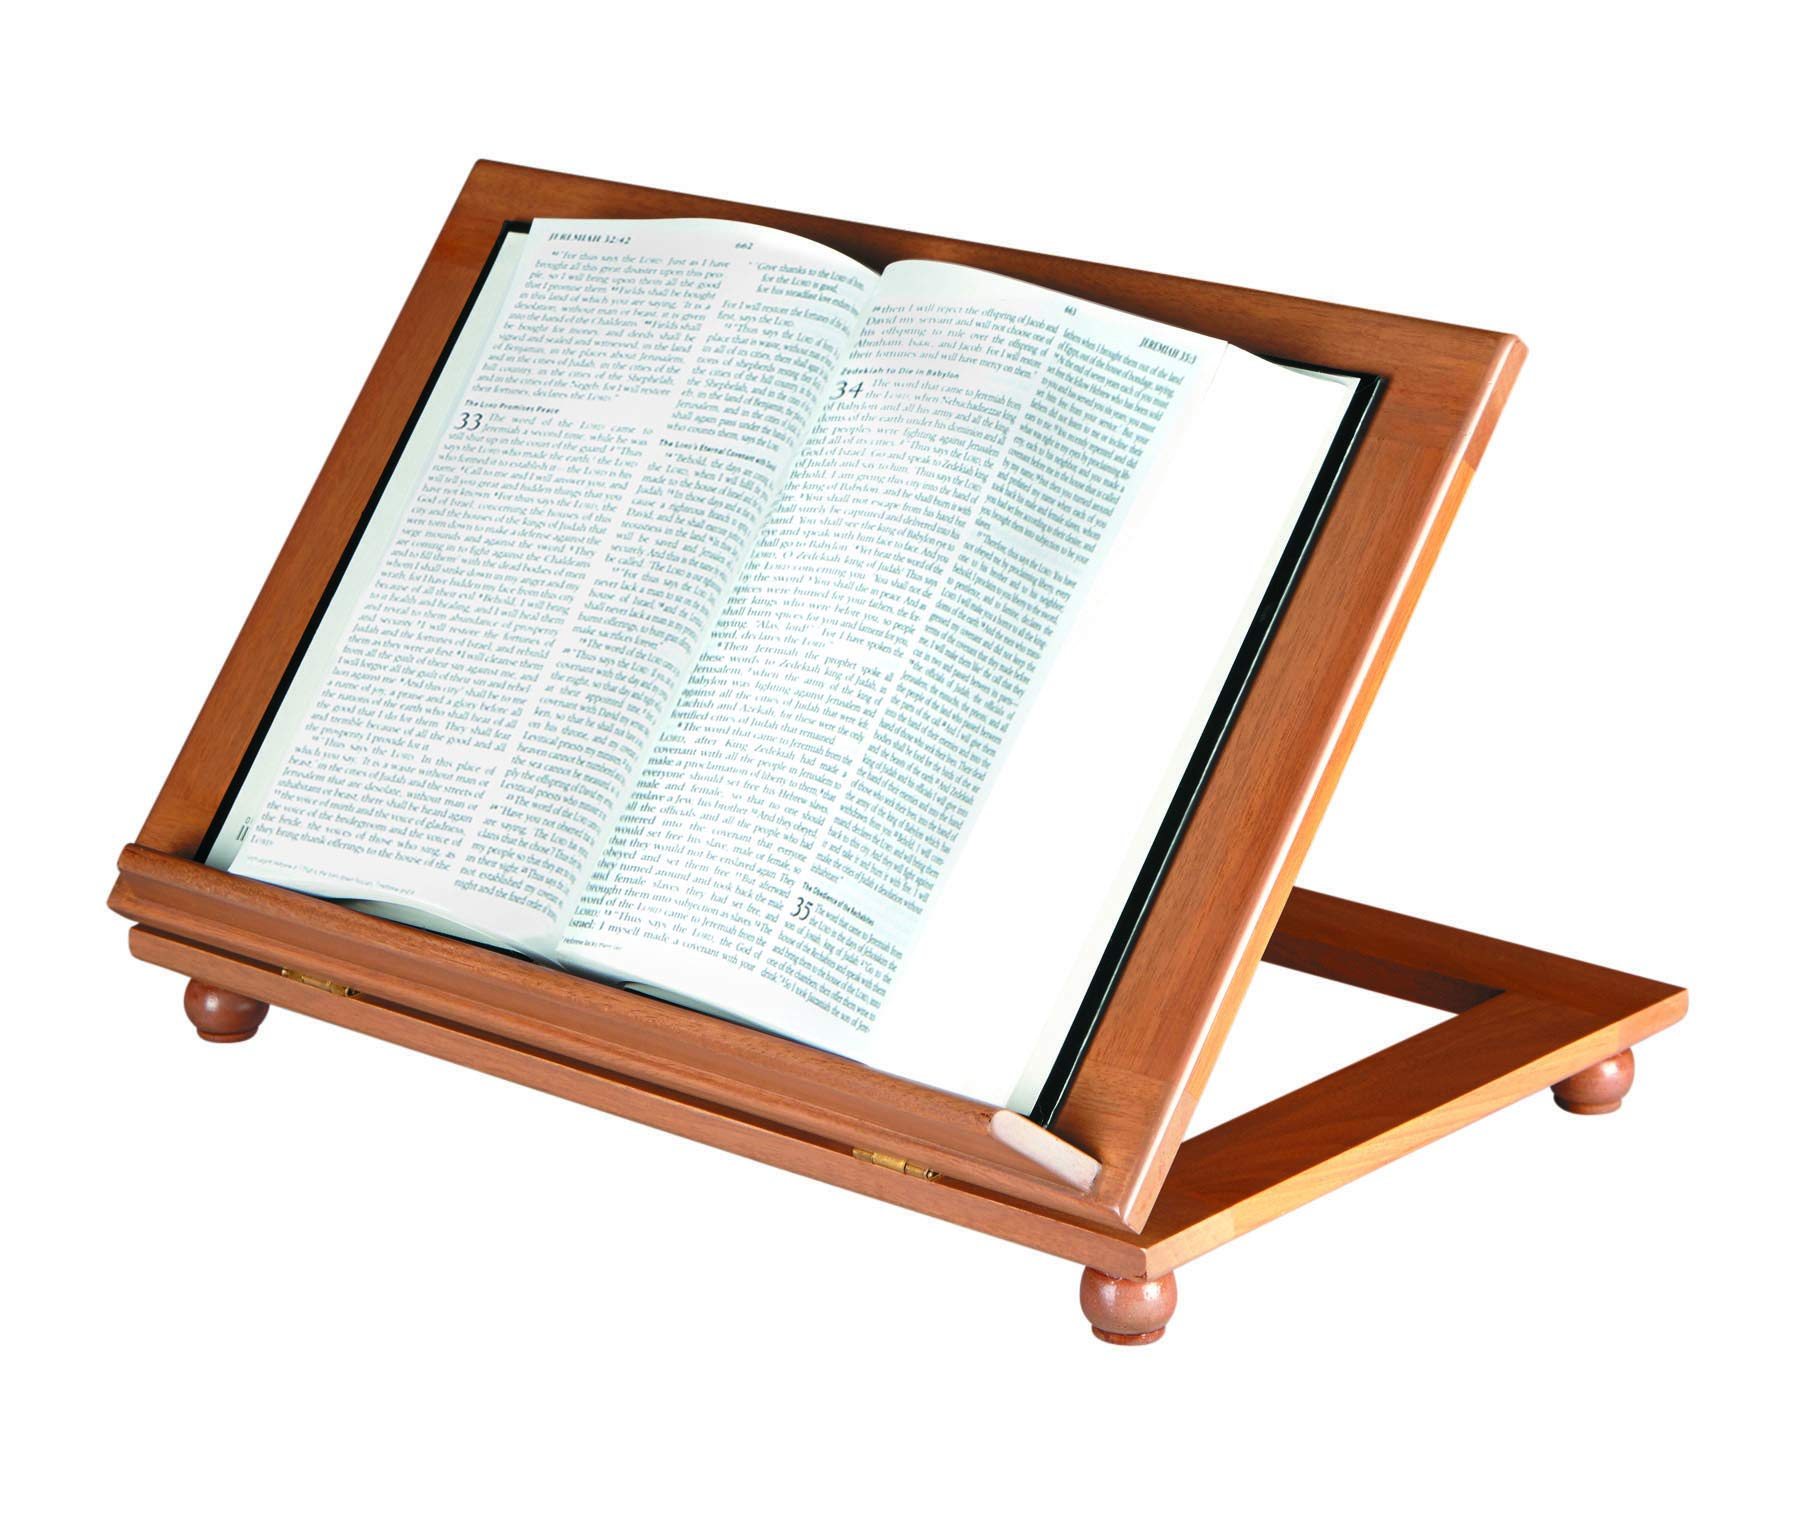 US Gifts Tdjustable Bible Stand-Pecan